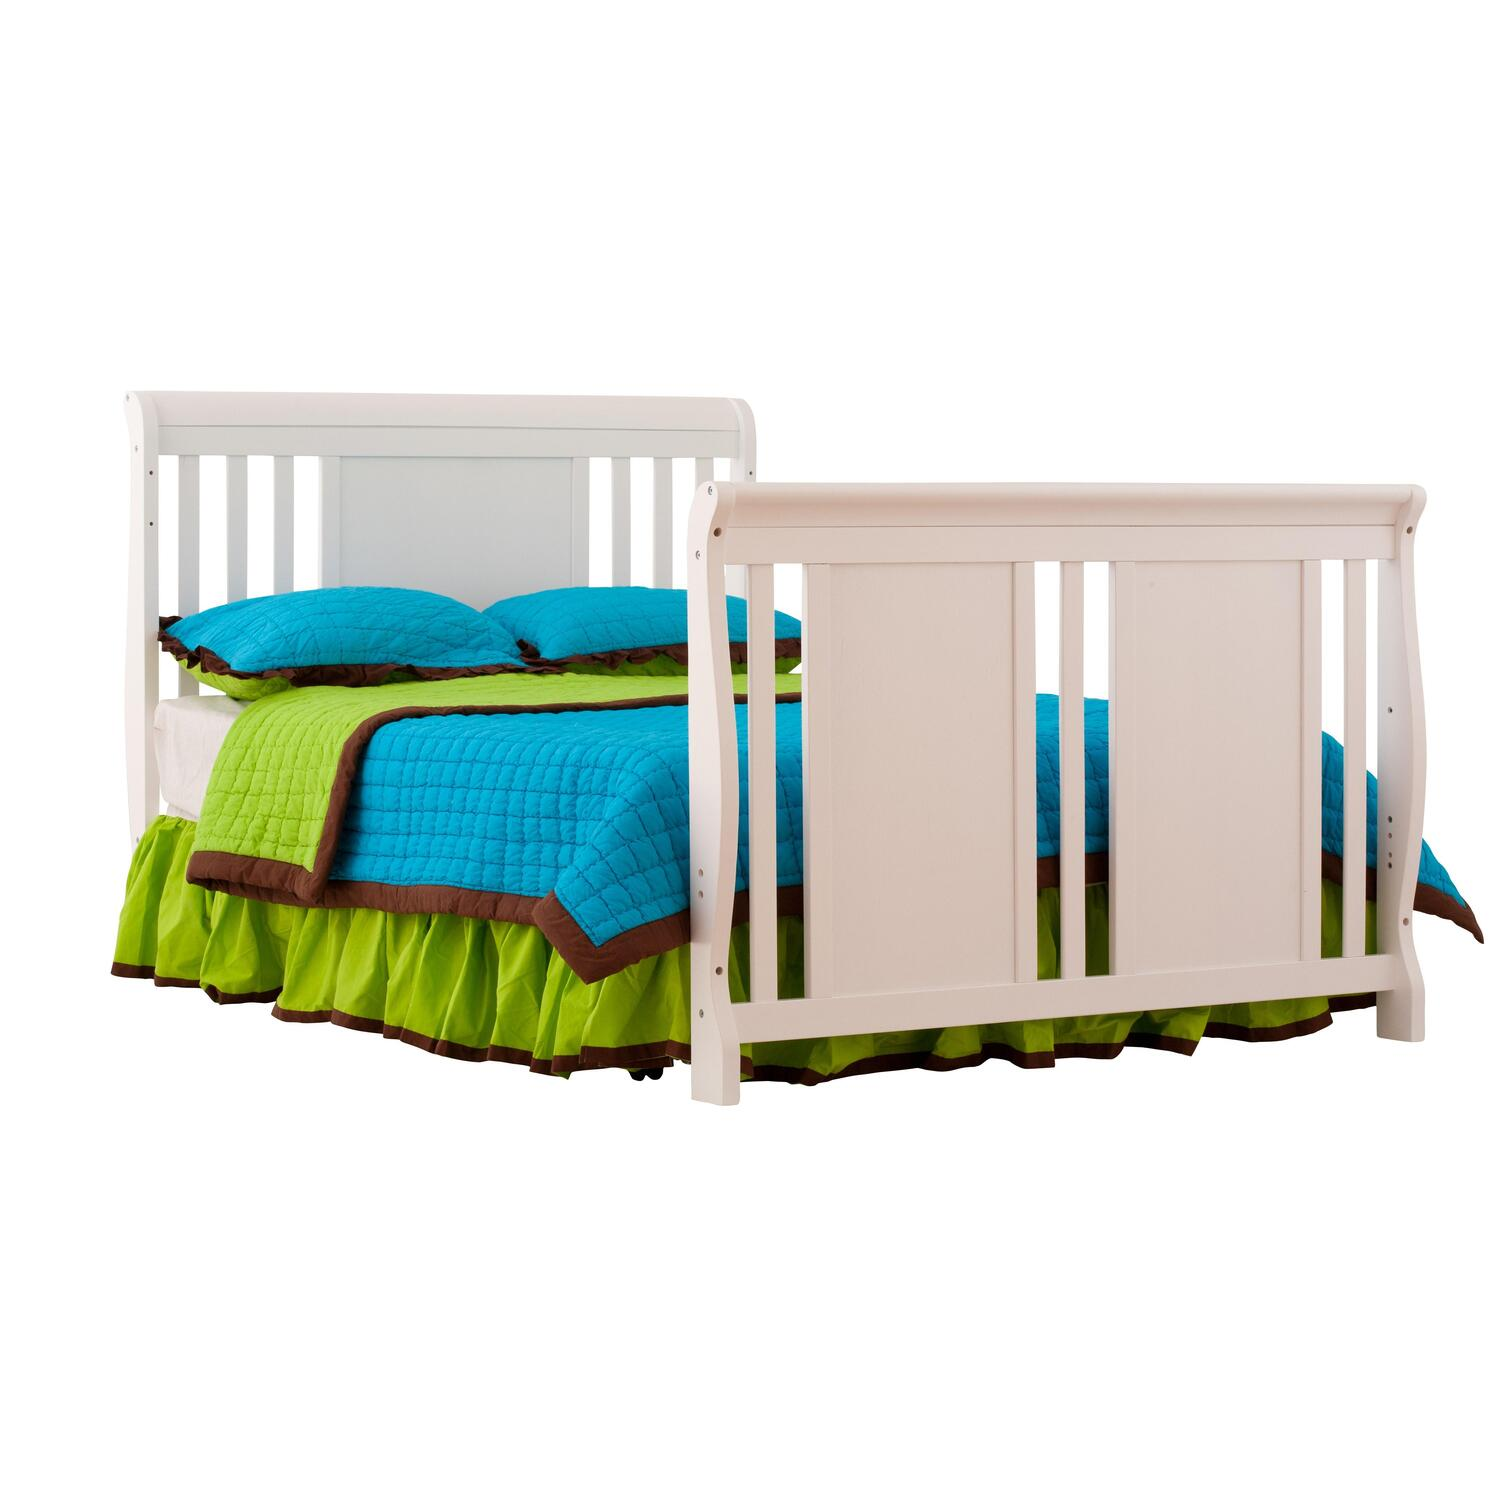 Storkcraft Stork Craft Verona 4 in 1 Fixed Side Convertible Crib by OJ Commerce $230.68 - $292.99